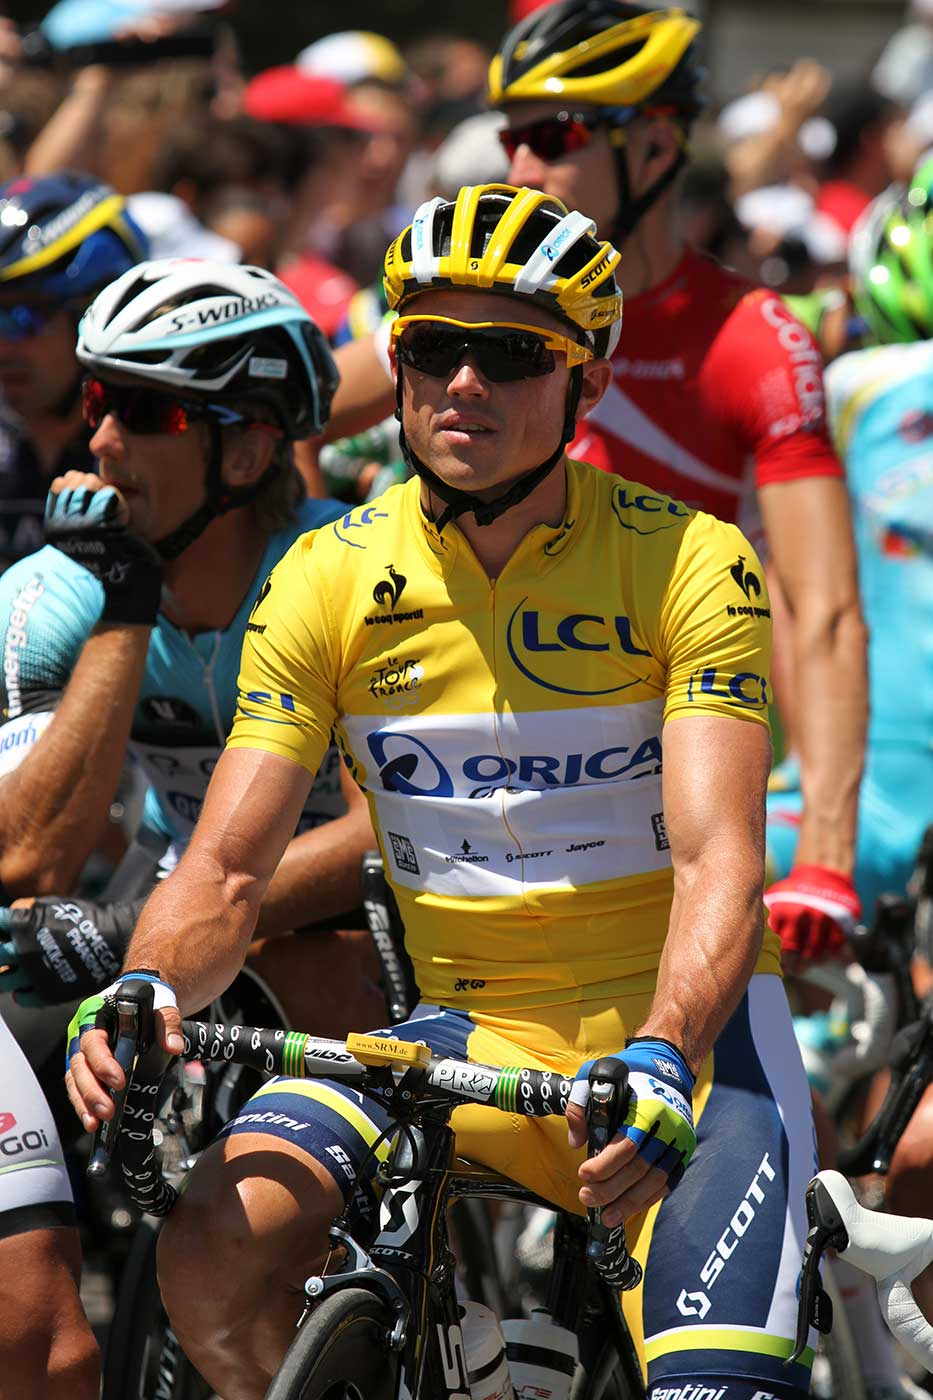 Simon Gerrans, riding for Orica GreenEdge, in yellow. - click to view larger image